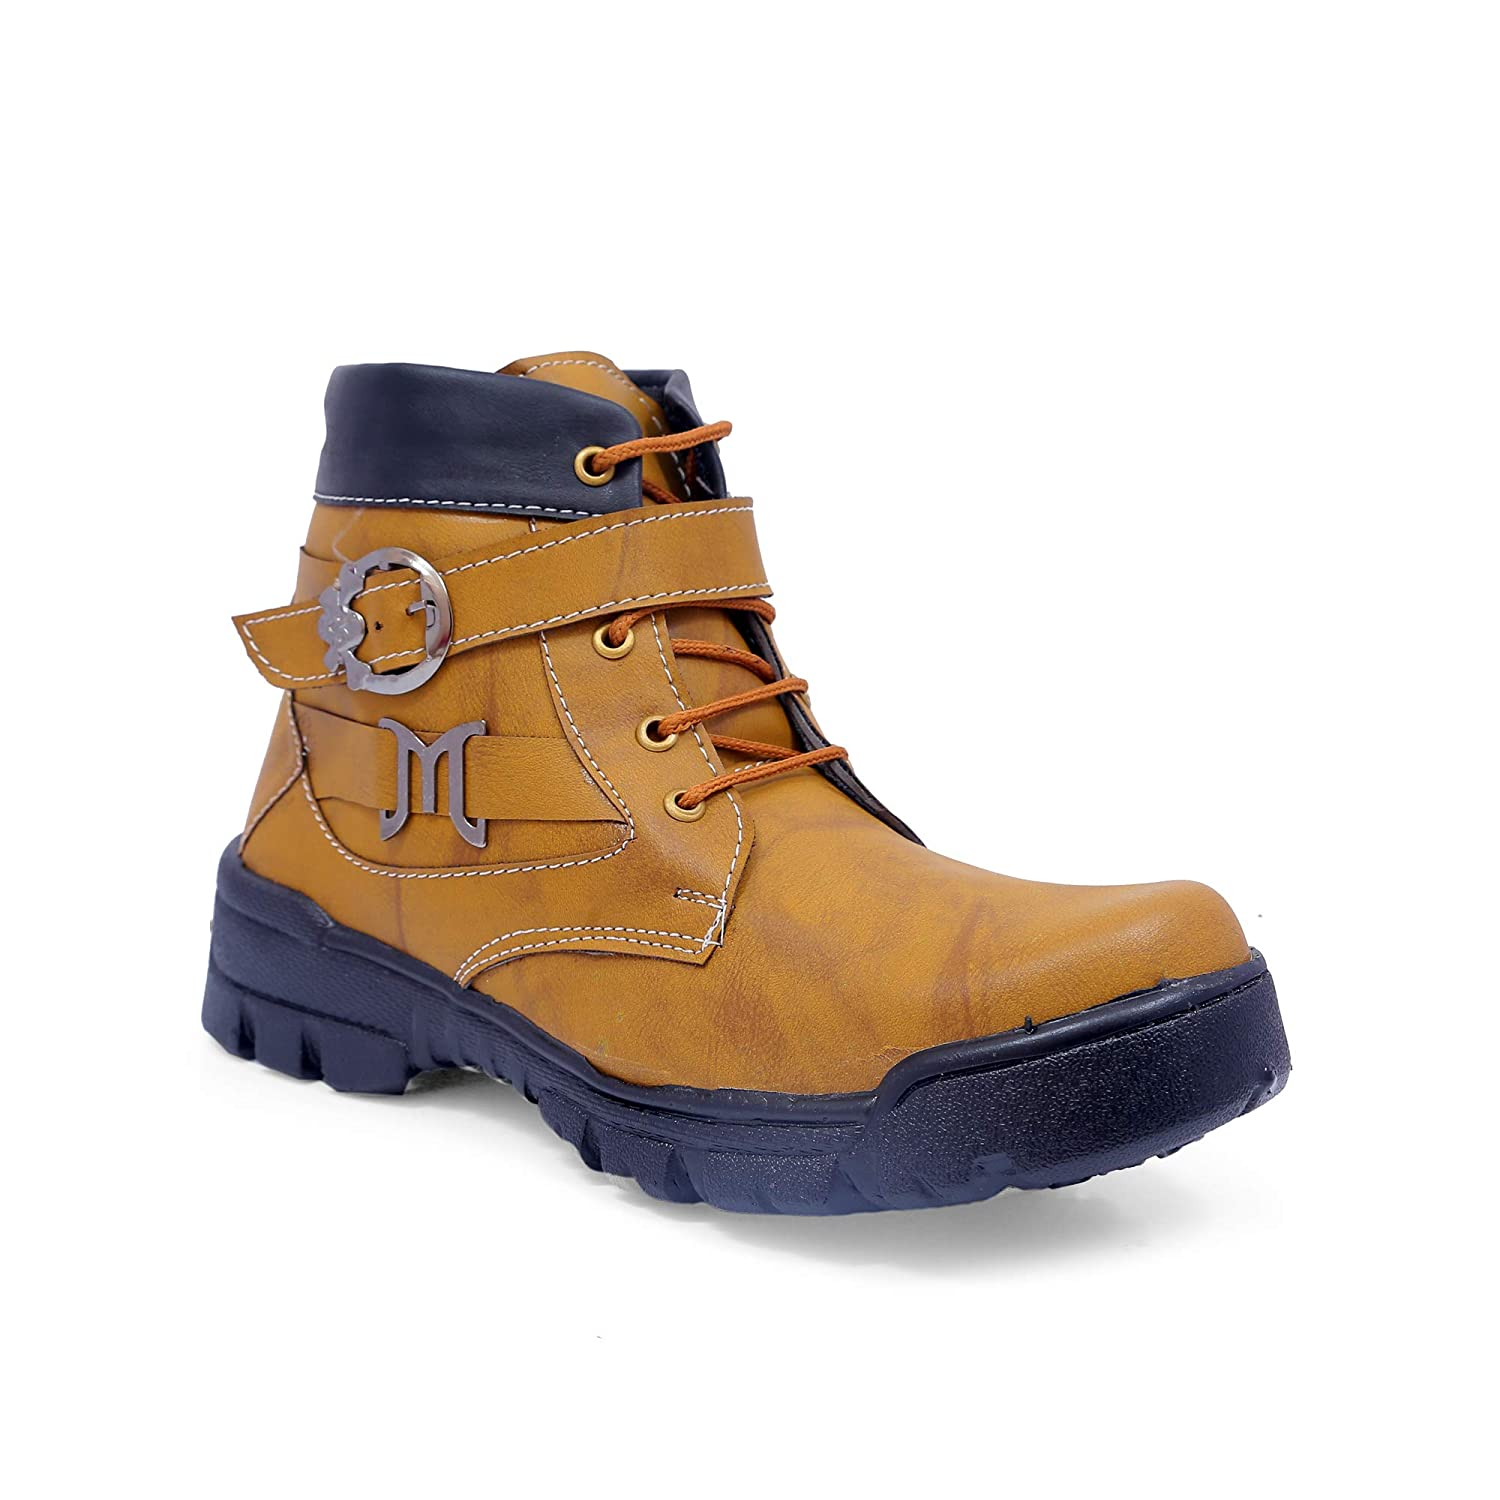 667994ea1e5 Daris Men/boy Casual American Synthetic Leather in Fashion High Top Boots  Shoes for Outdoor & Party Wear